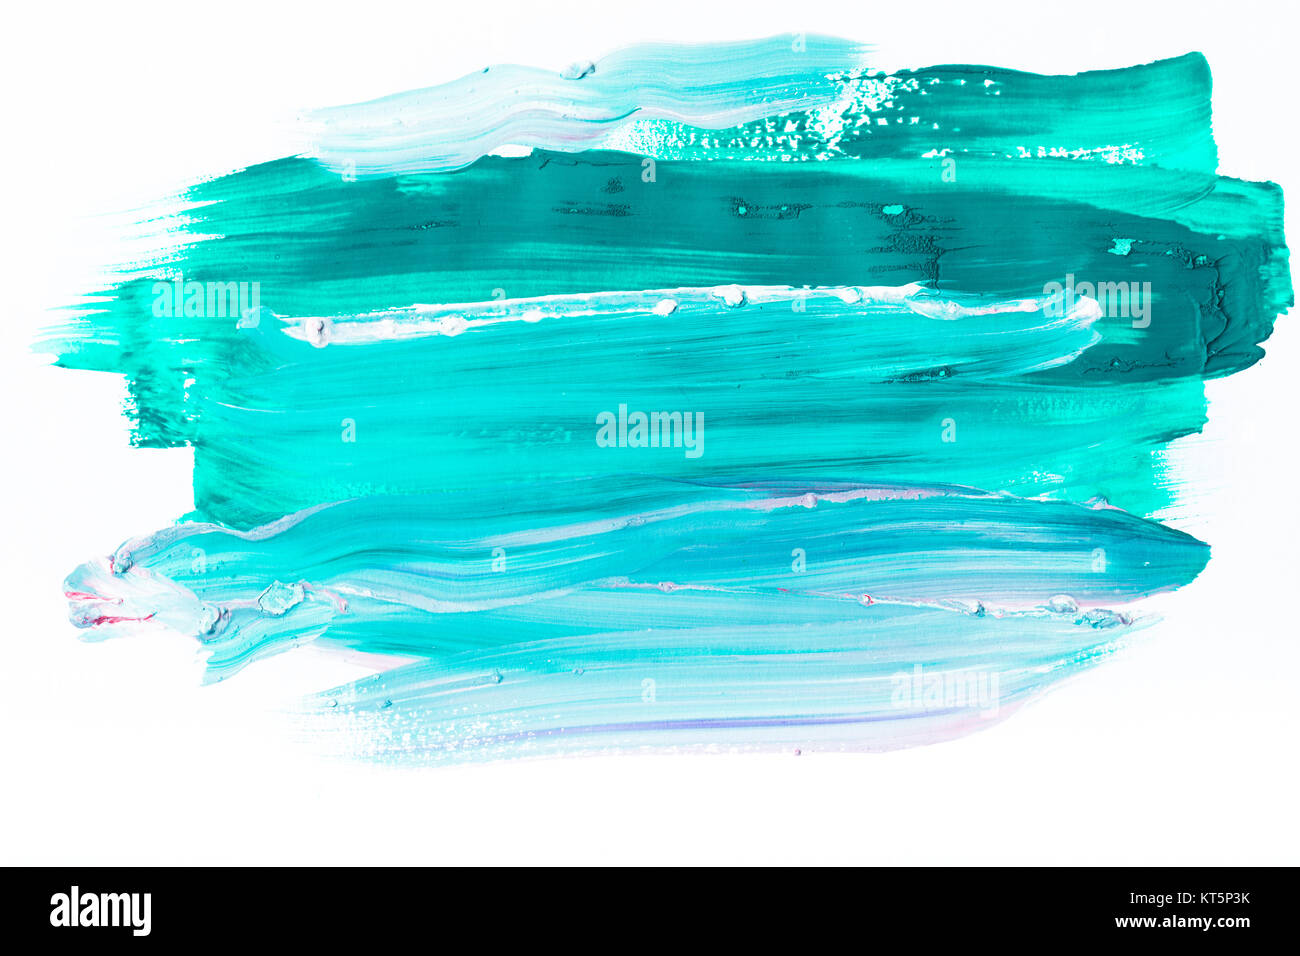 abstract painting with turquoise brush strokes on white - Stock Image